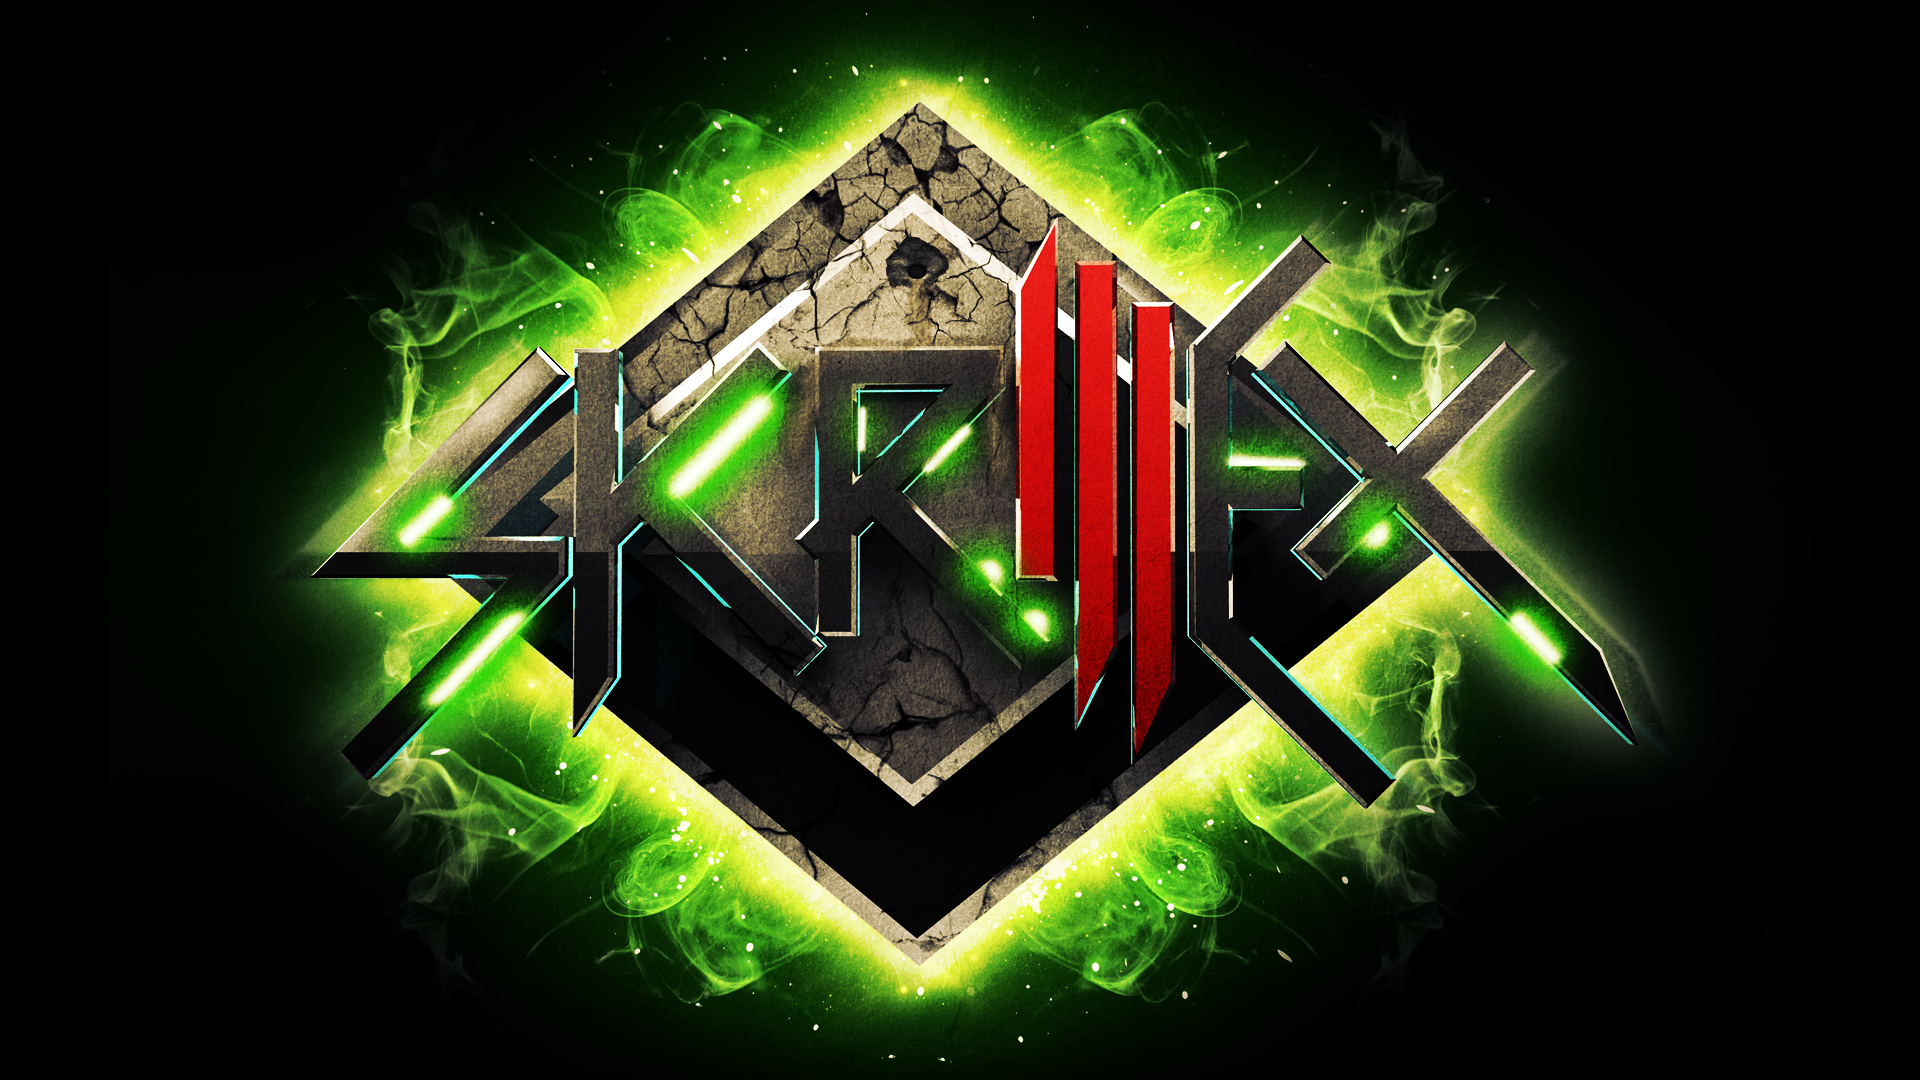 Skrillex wallpaper | 1920x1080 | #43628